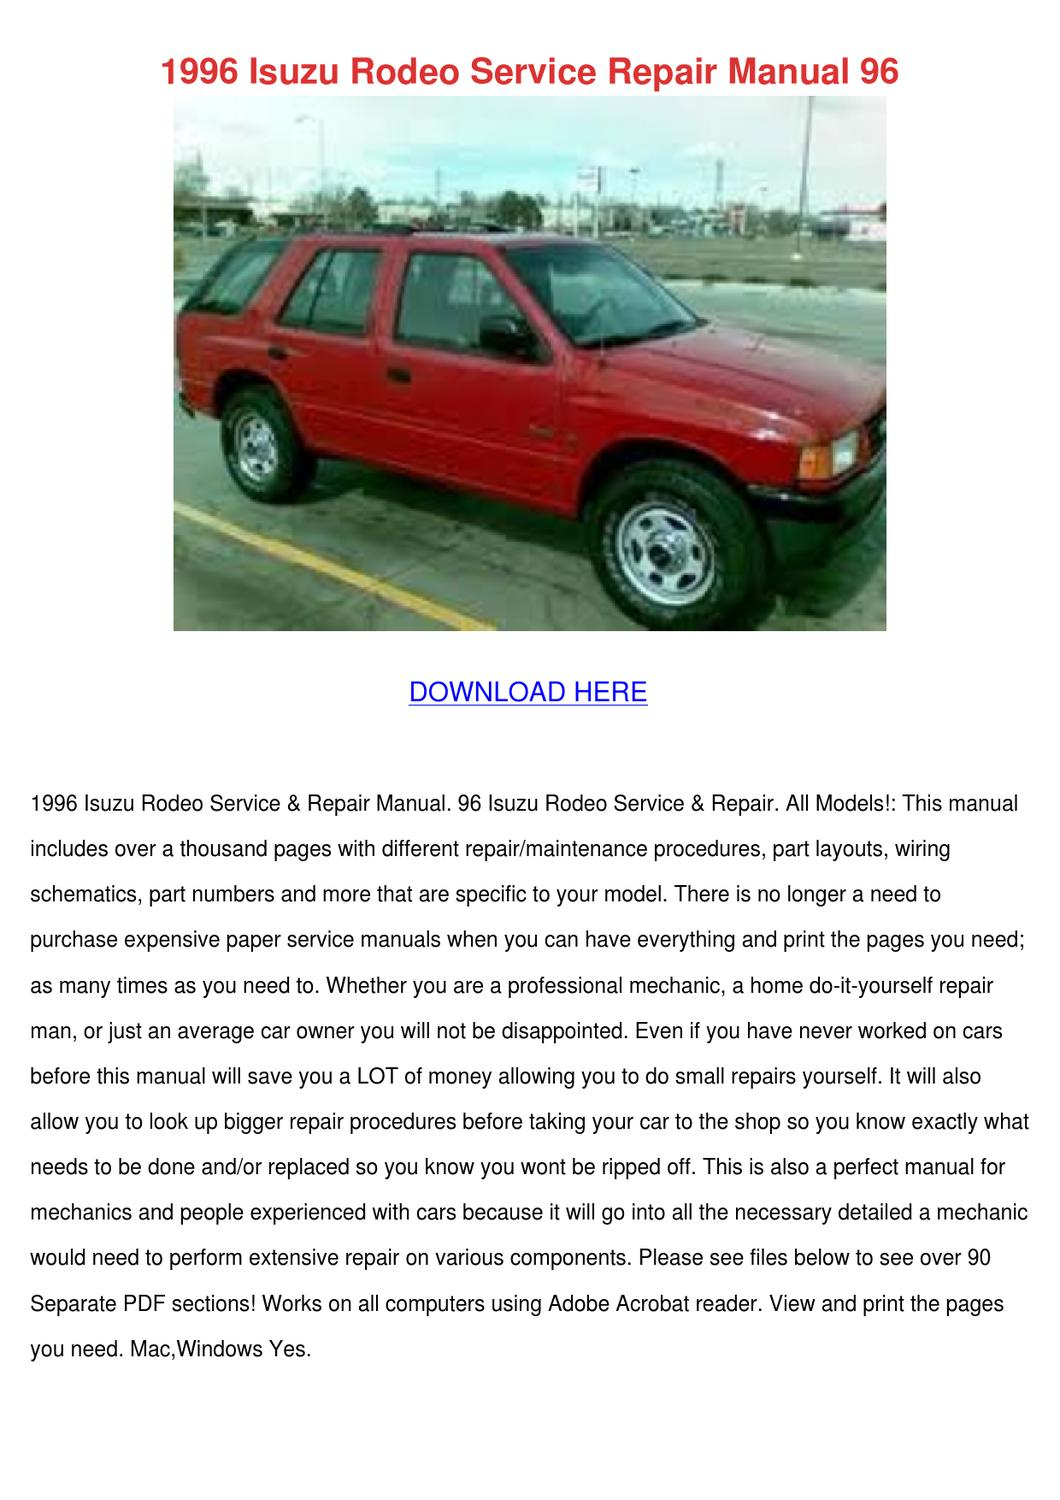 1996 isuzu rodeo service repair manual 96 by cathi keegan issuu rh issuu  com 1999 Isuzu Amigo Review 1999 Isuzu Amigo Review